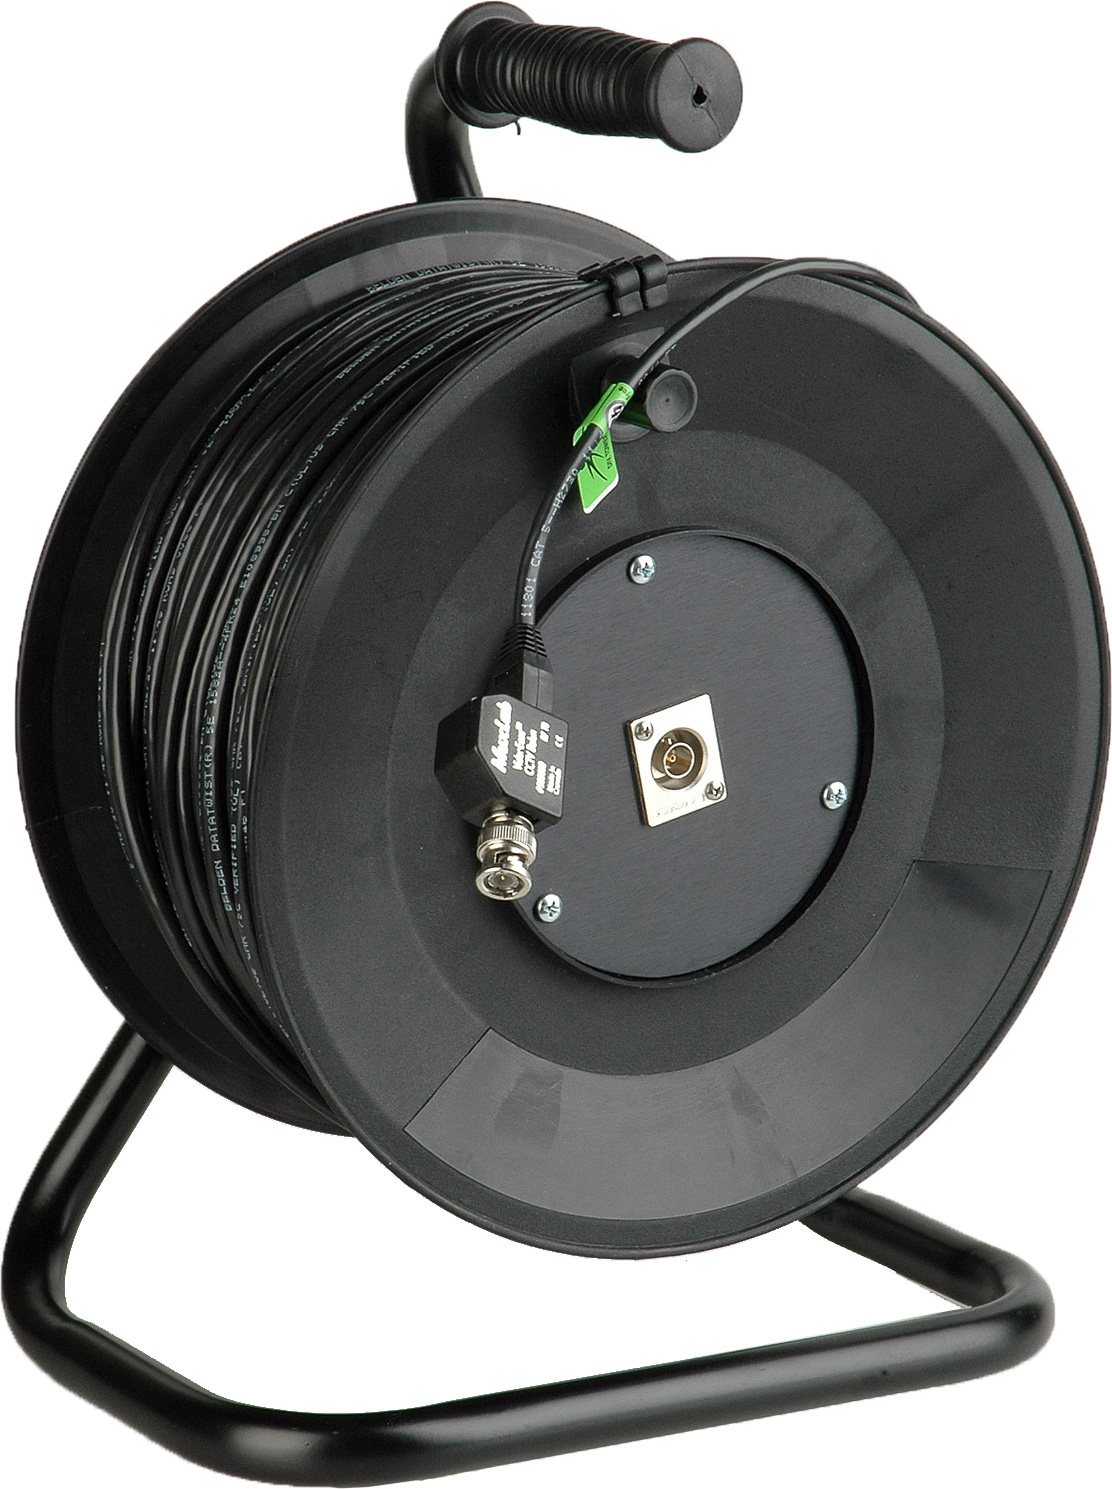 Connect-N-Go Reel Composite Video Over Belden 1583A Cat5e Cable 250 Ft